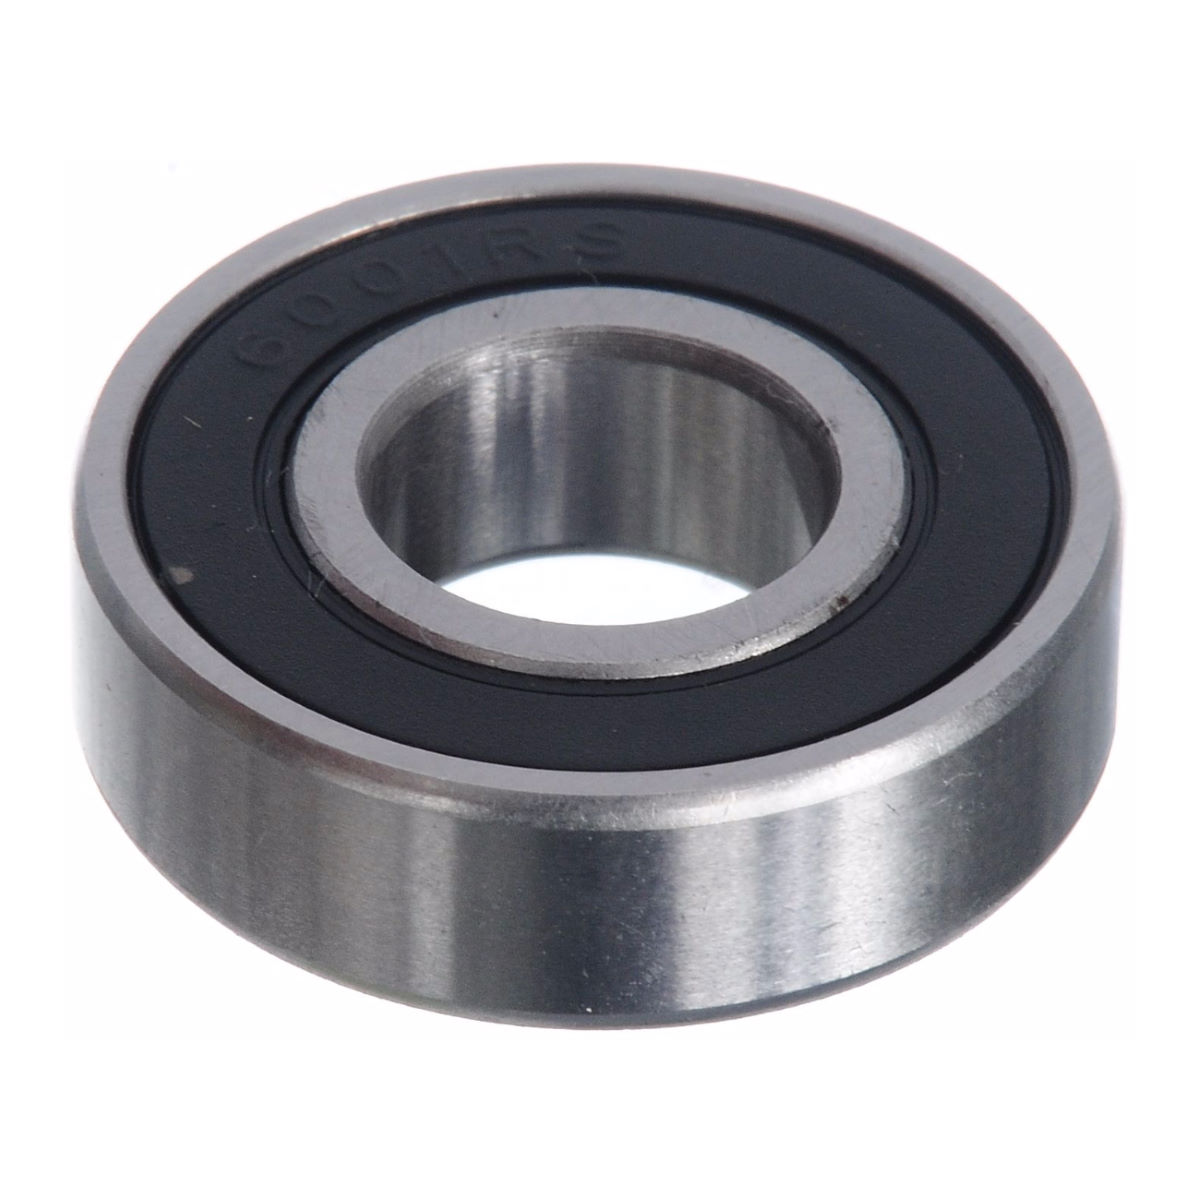 Brand-X Brand-X Sealed Bearing - 6001 2RS Bearing   Wheel Hub Spares